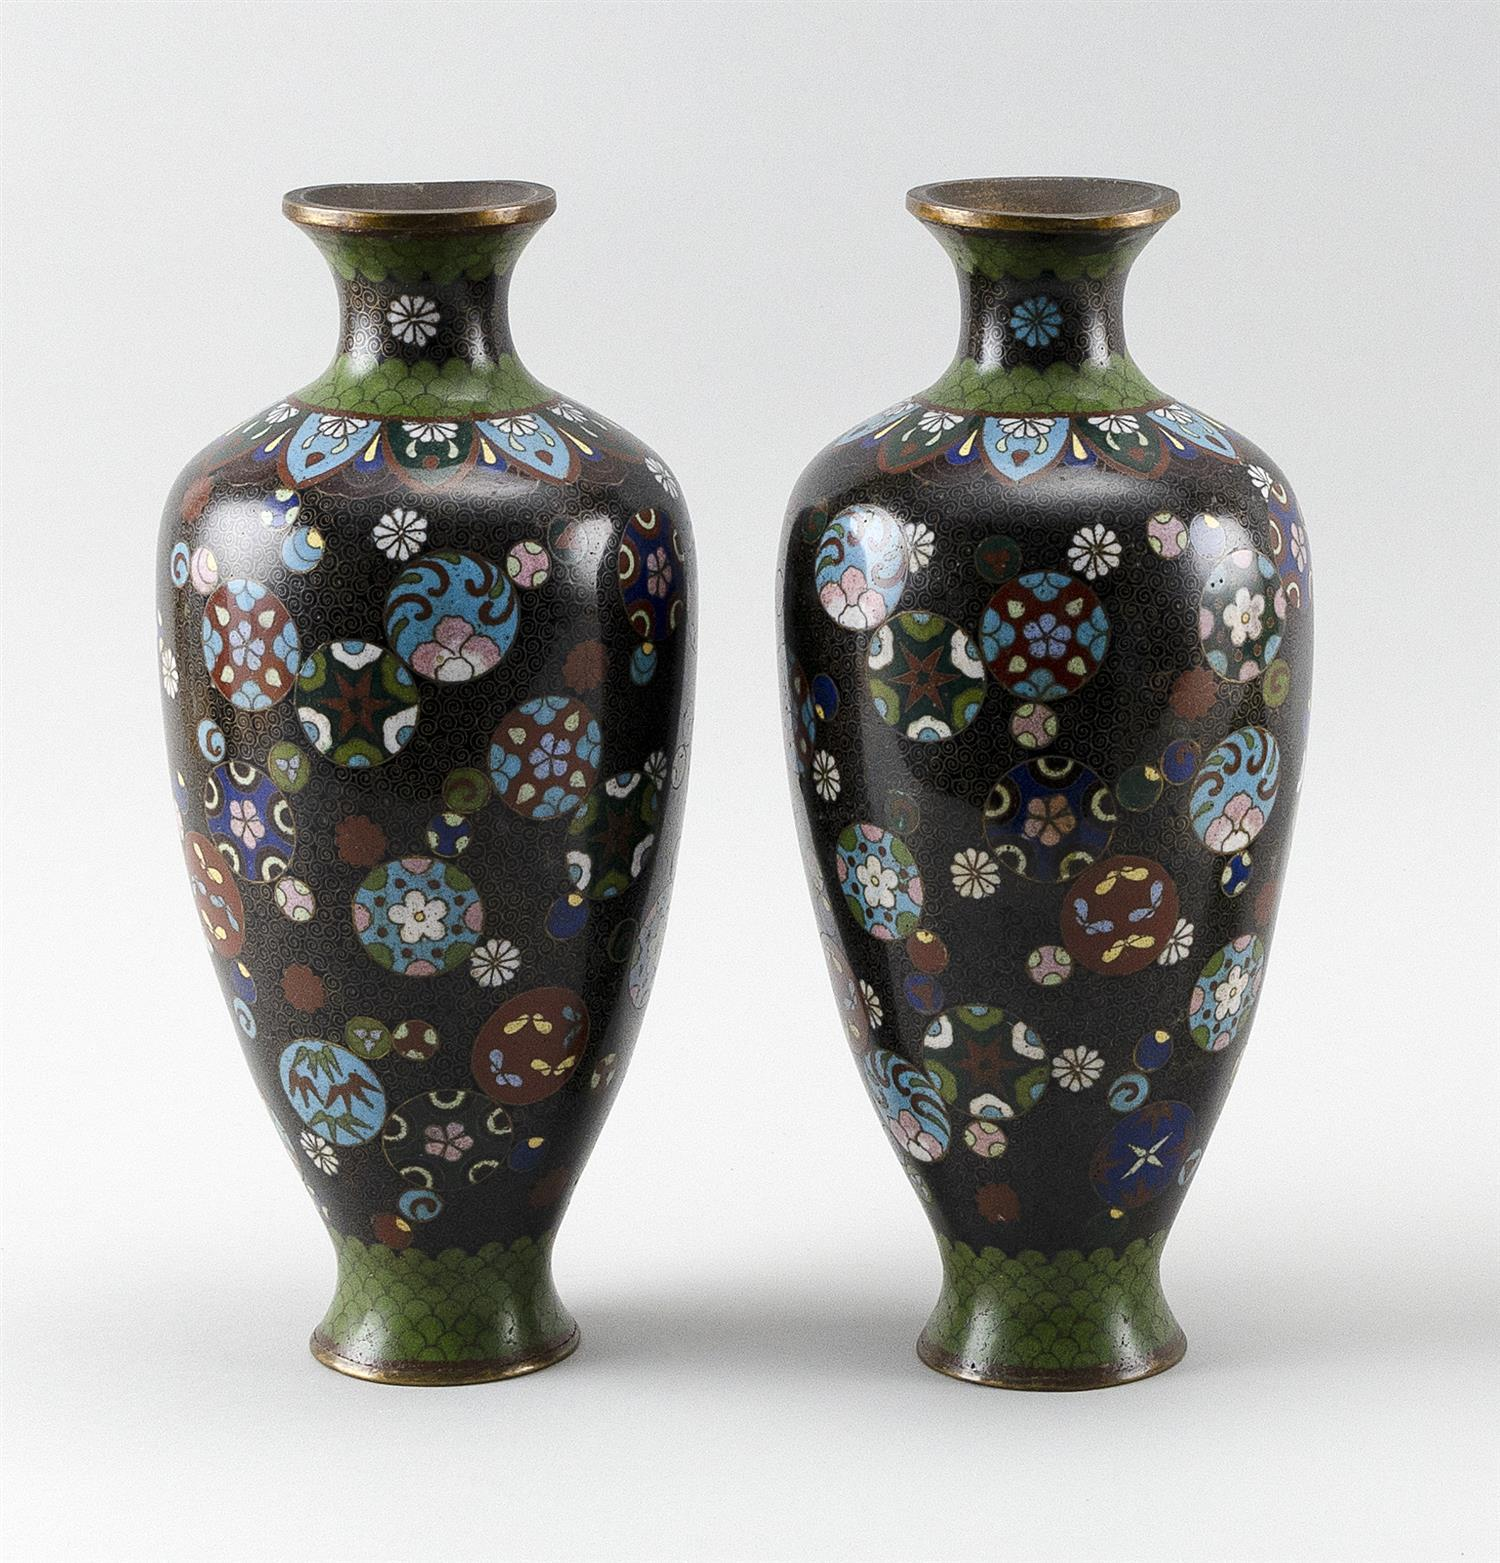 """PAIR OF JAPANESE CLOISONNÉ ENAMEL VASES In rouleau form, with decoration of a floral mon on a black ground. Height 10""""."""